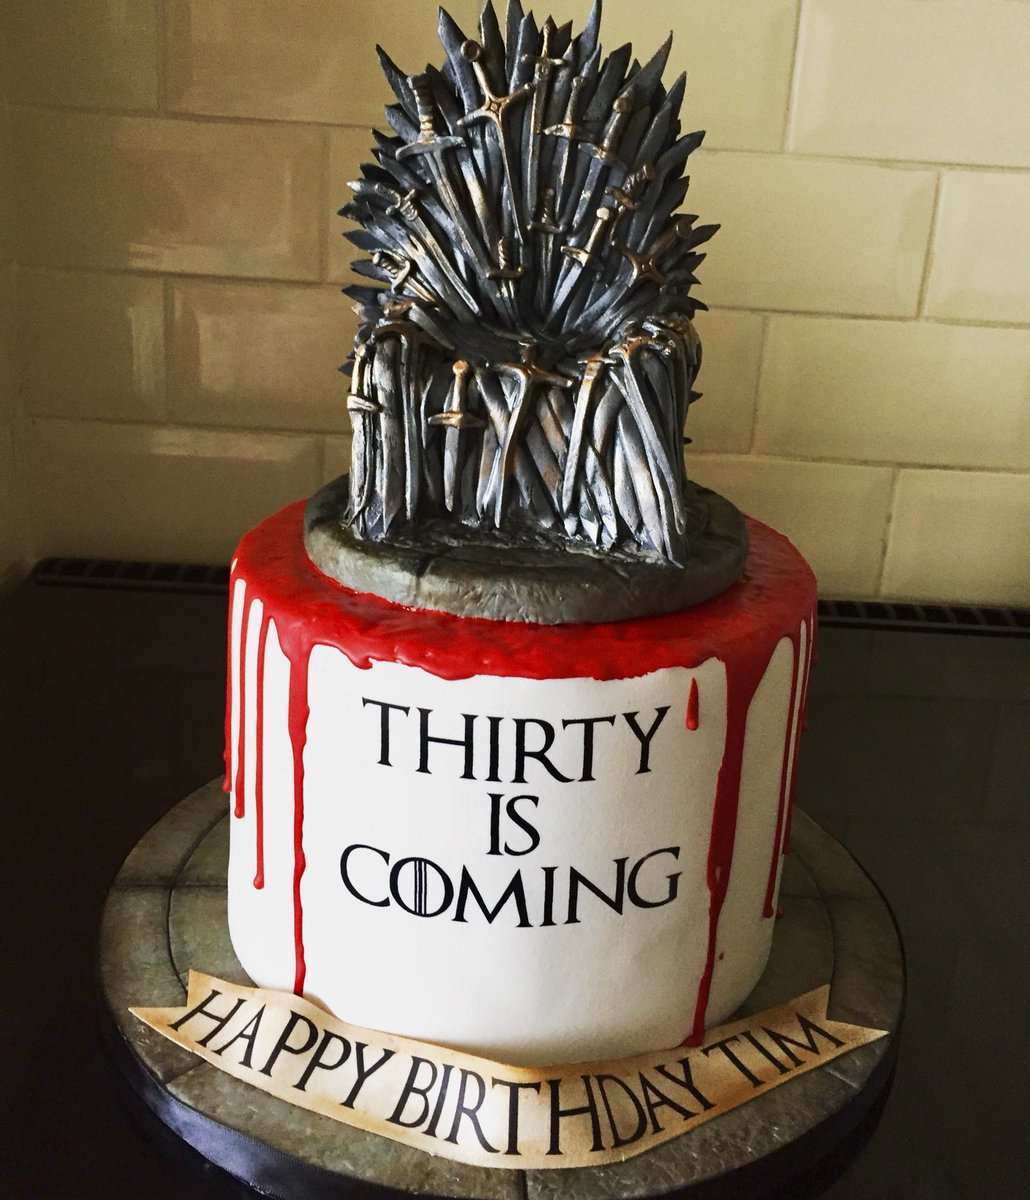 Sarah Phillips On Twitter Game Of Thrones 30th Birthday Cake For